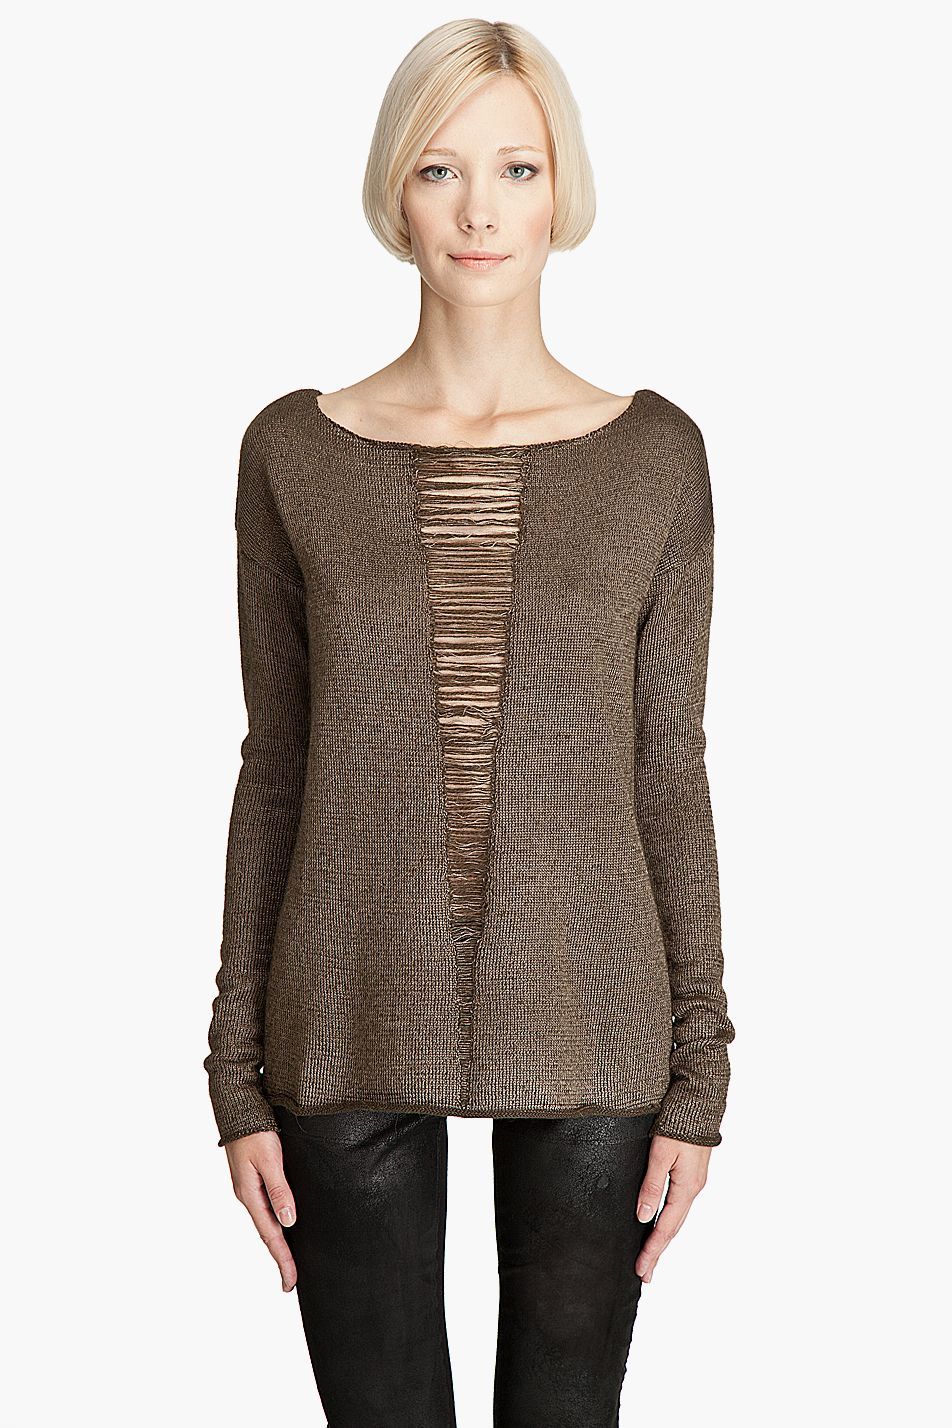 Elizabeth and James // Belinda Boatneck Pullover $147.50 | Sweater ...